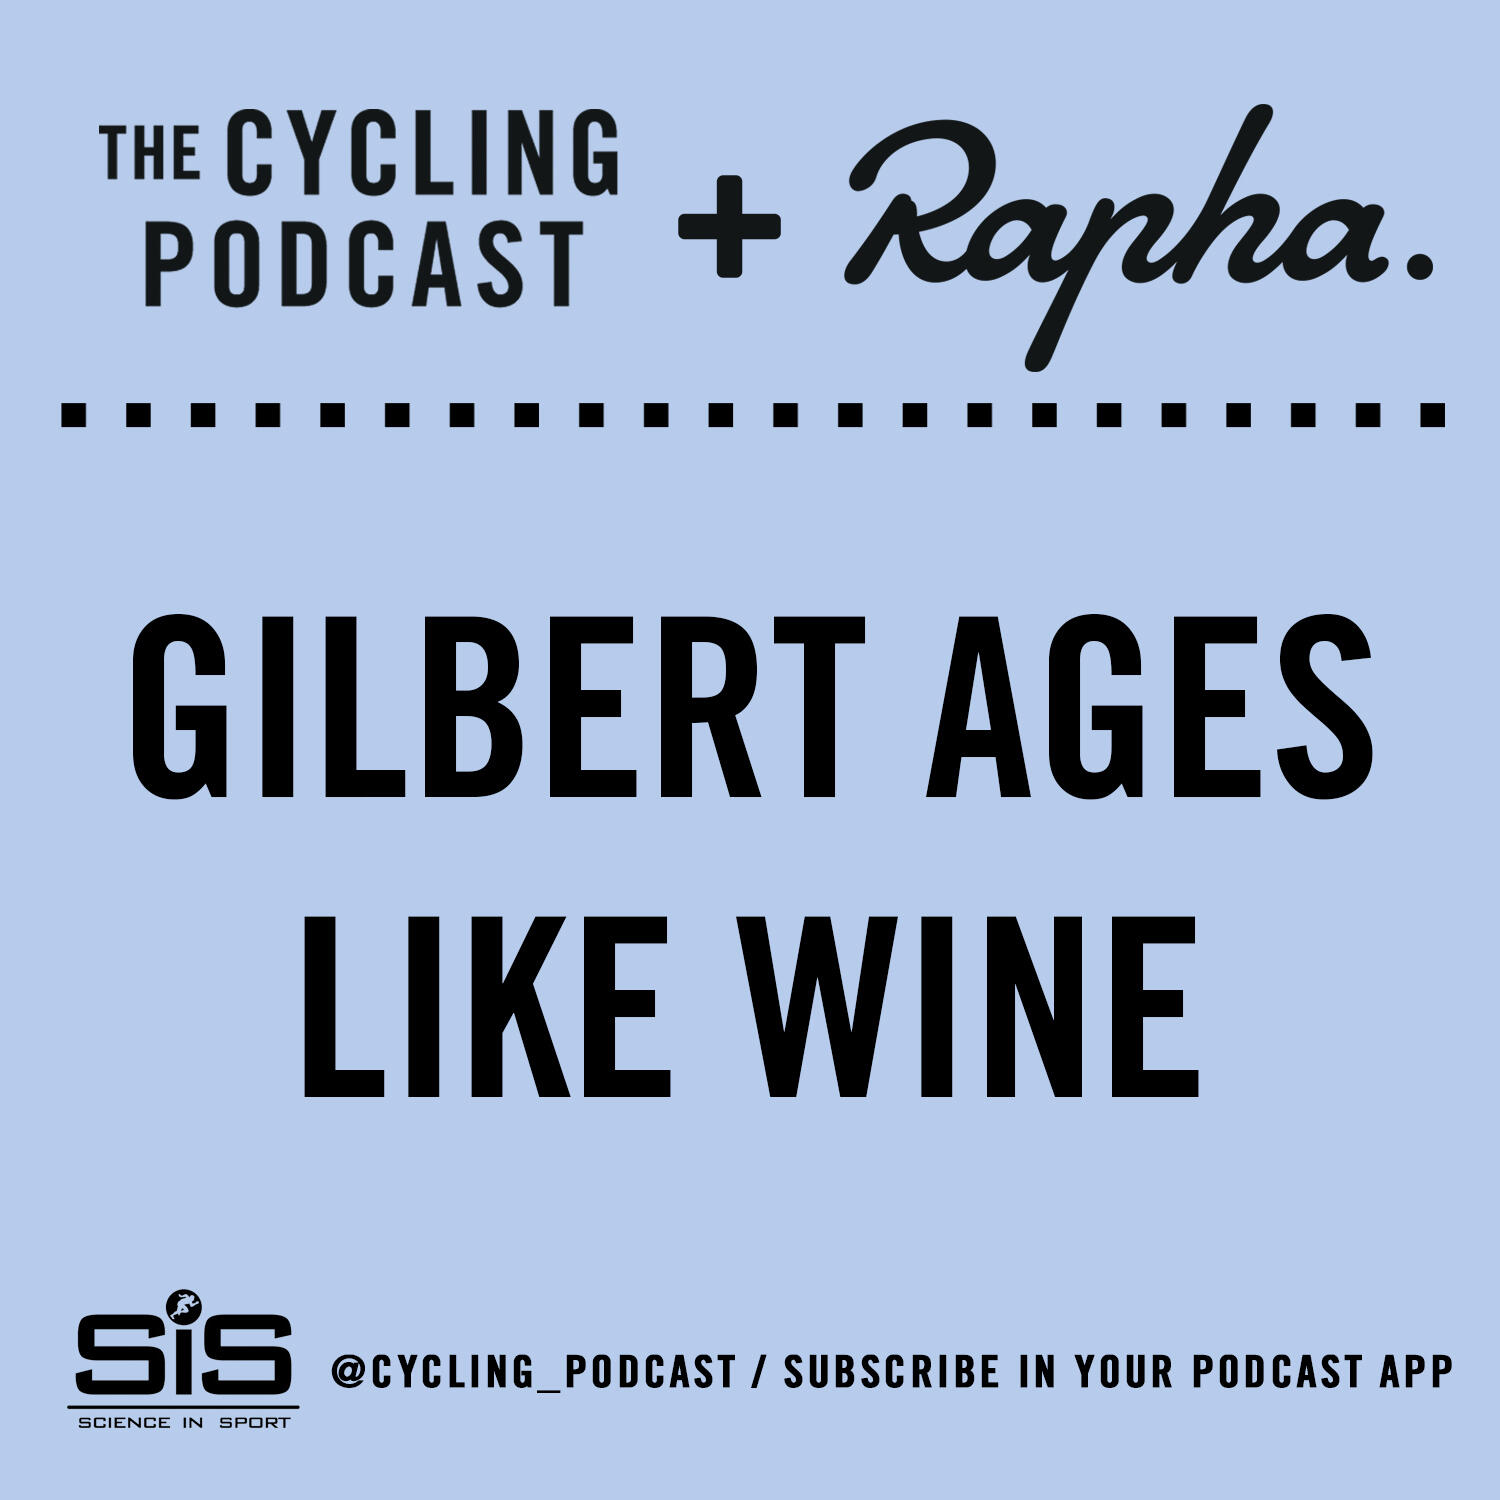 25: Gilbert ages like wine